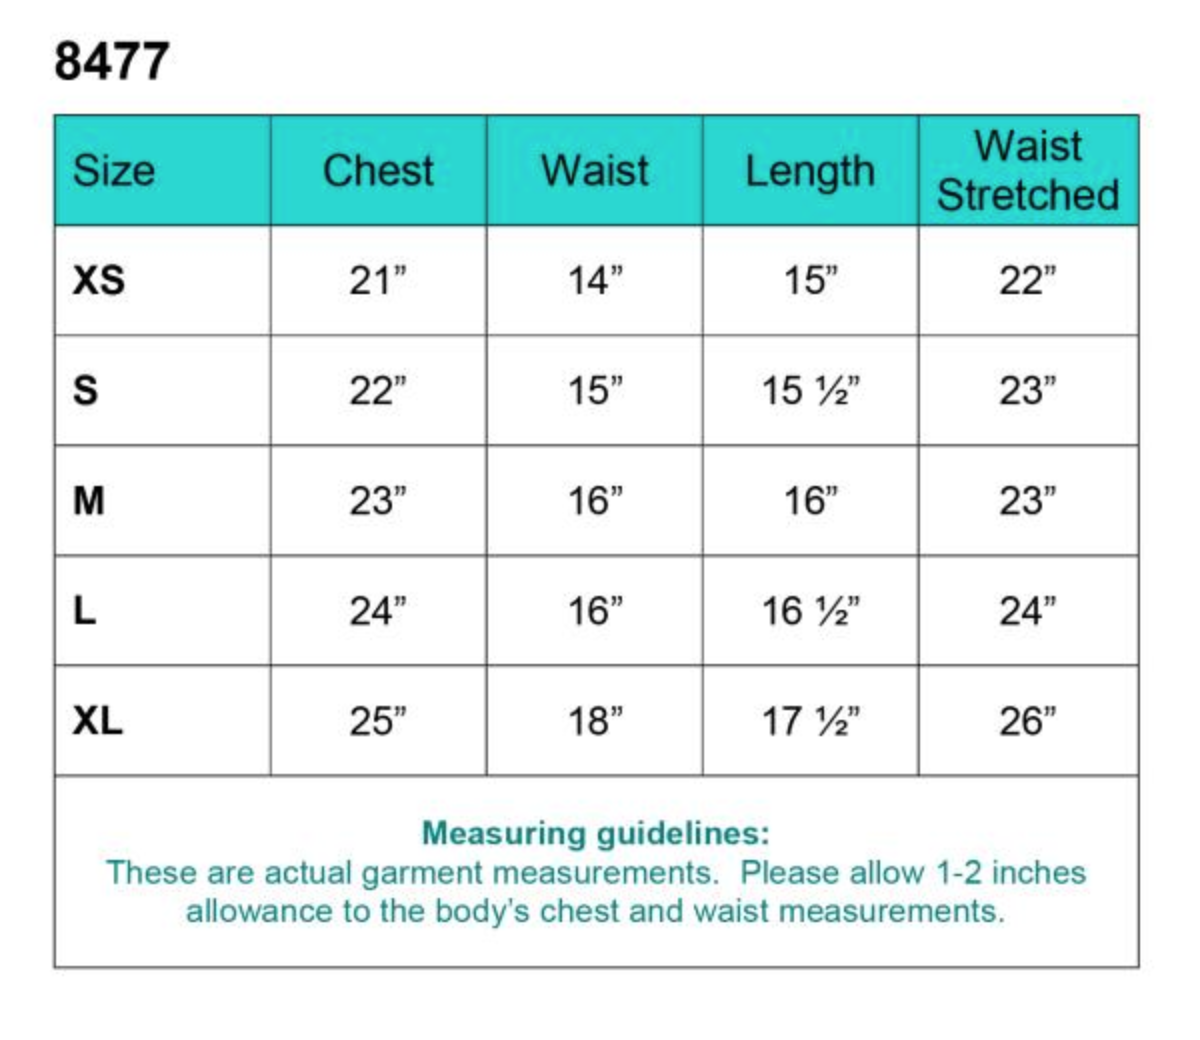 sizing-chart-8477.png